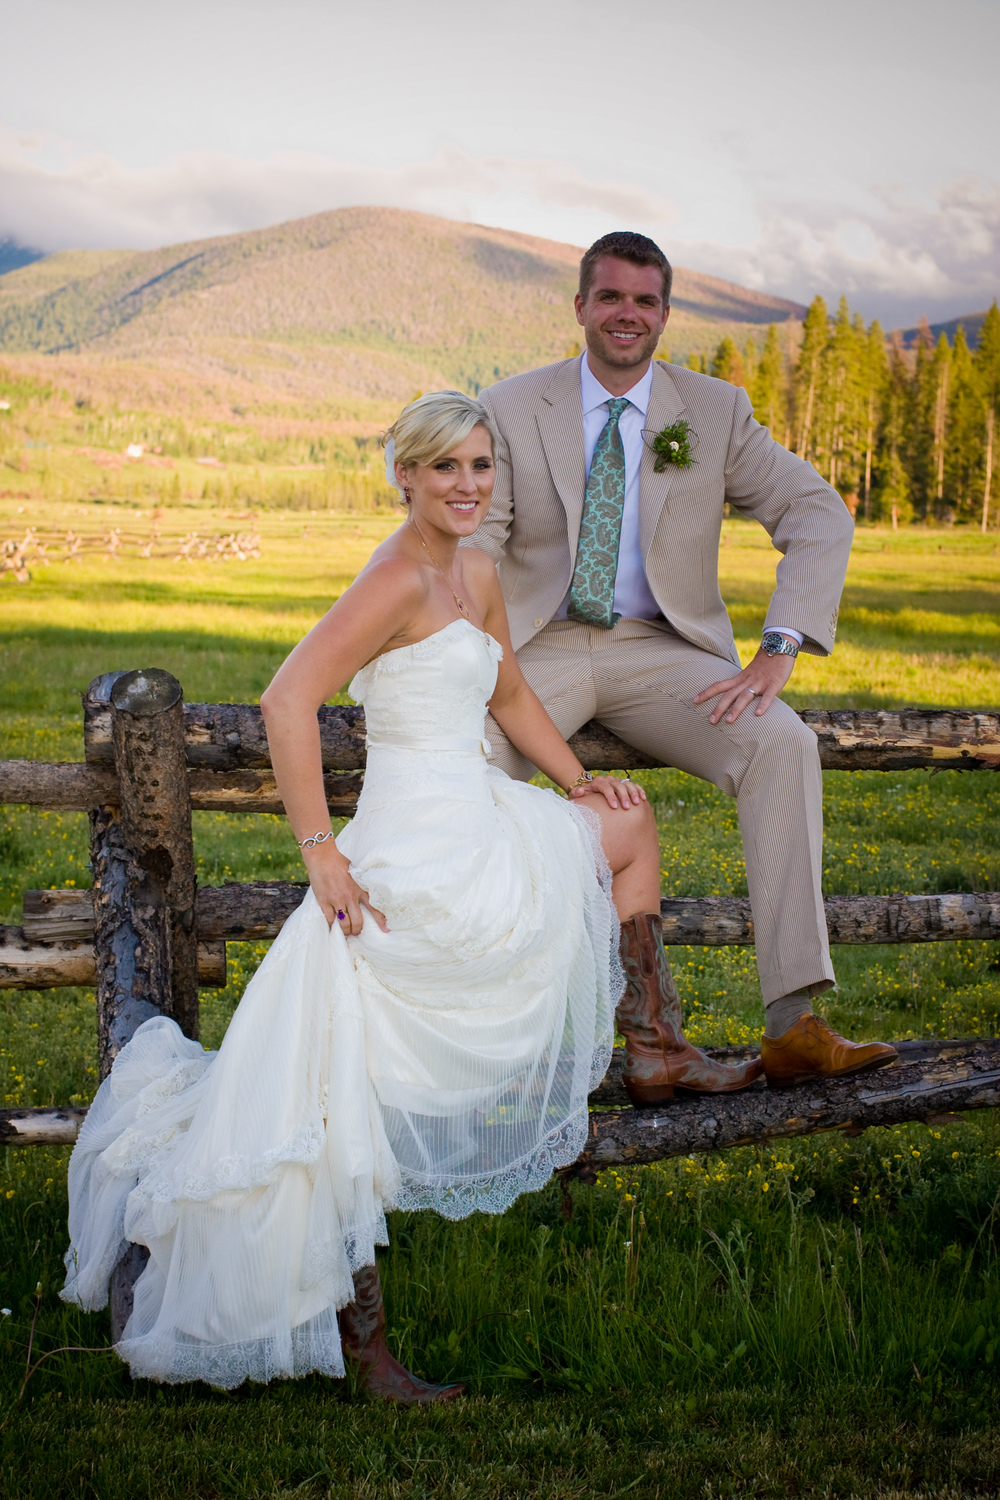 Devils_Thumb_Ranch_Wedding_049.JPG